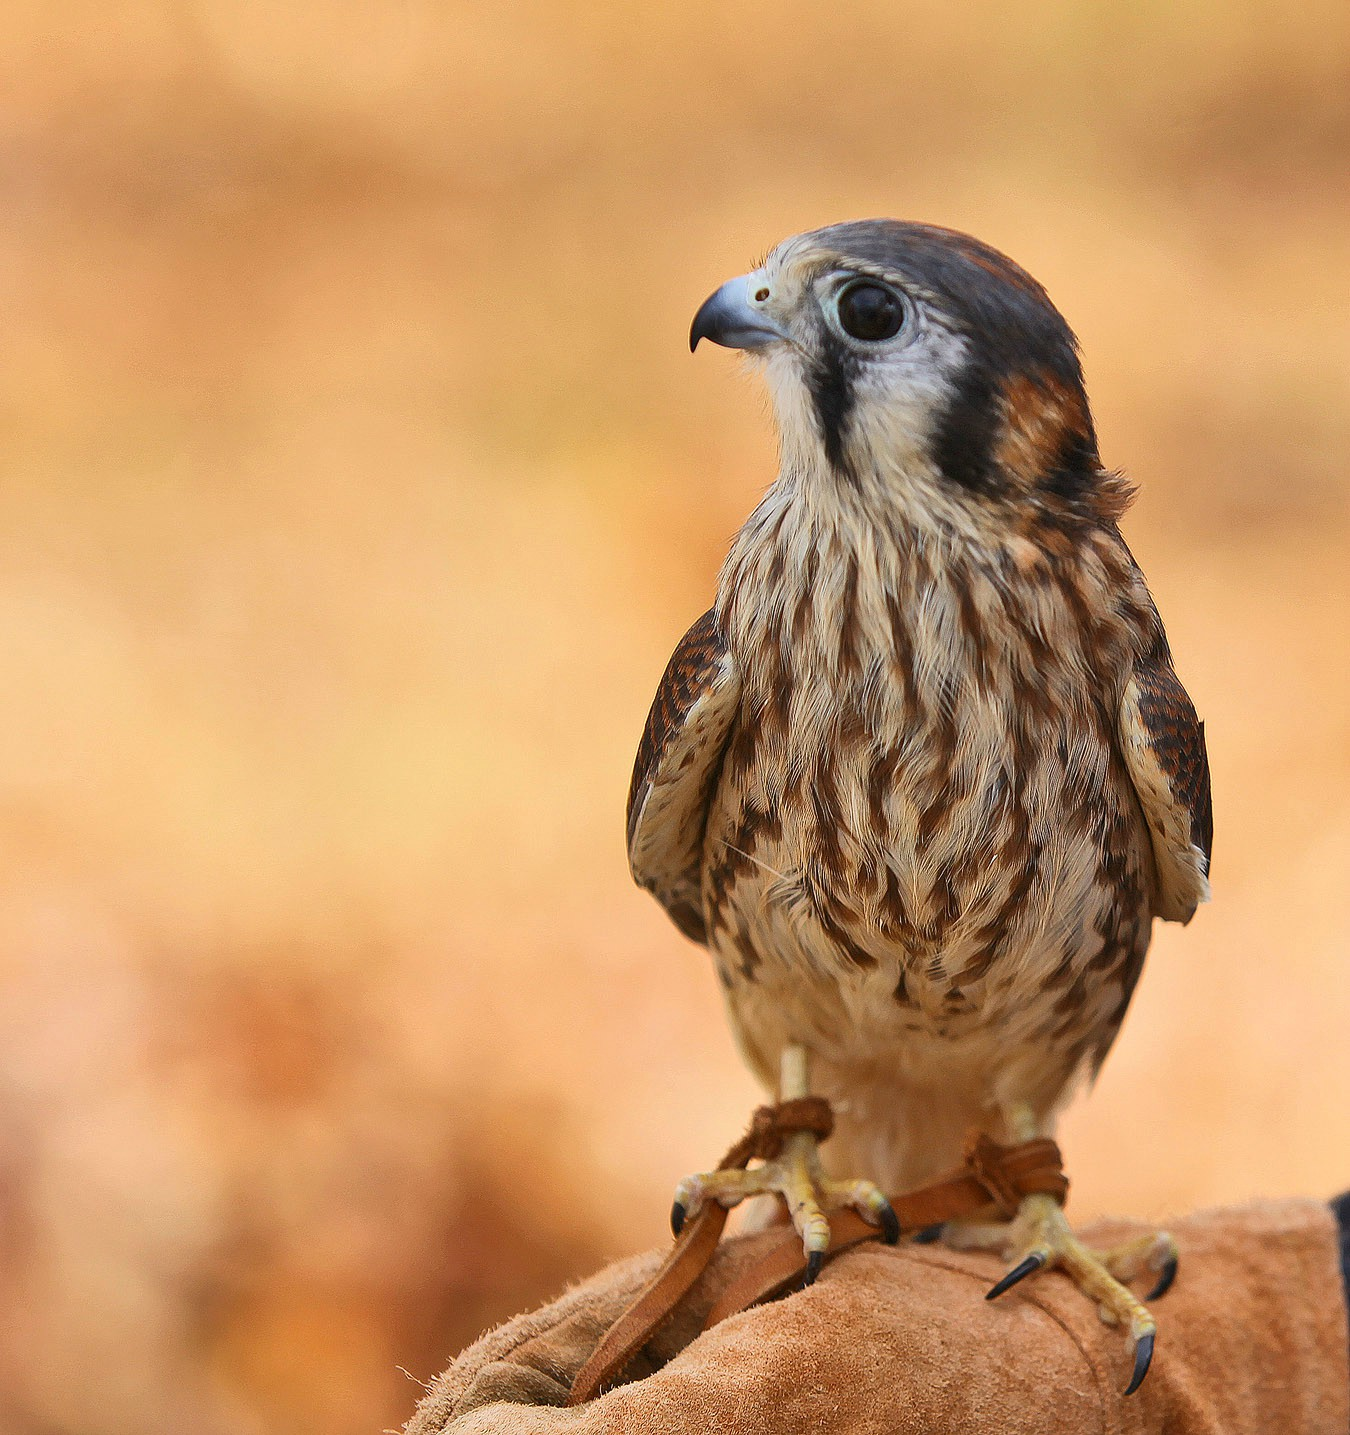 kestrel img aw author sava gregory and verena